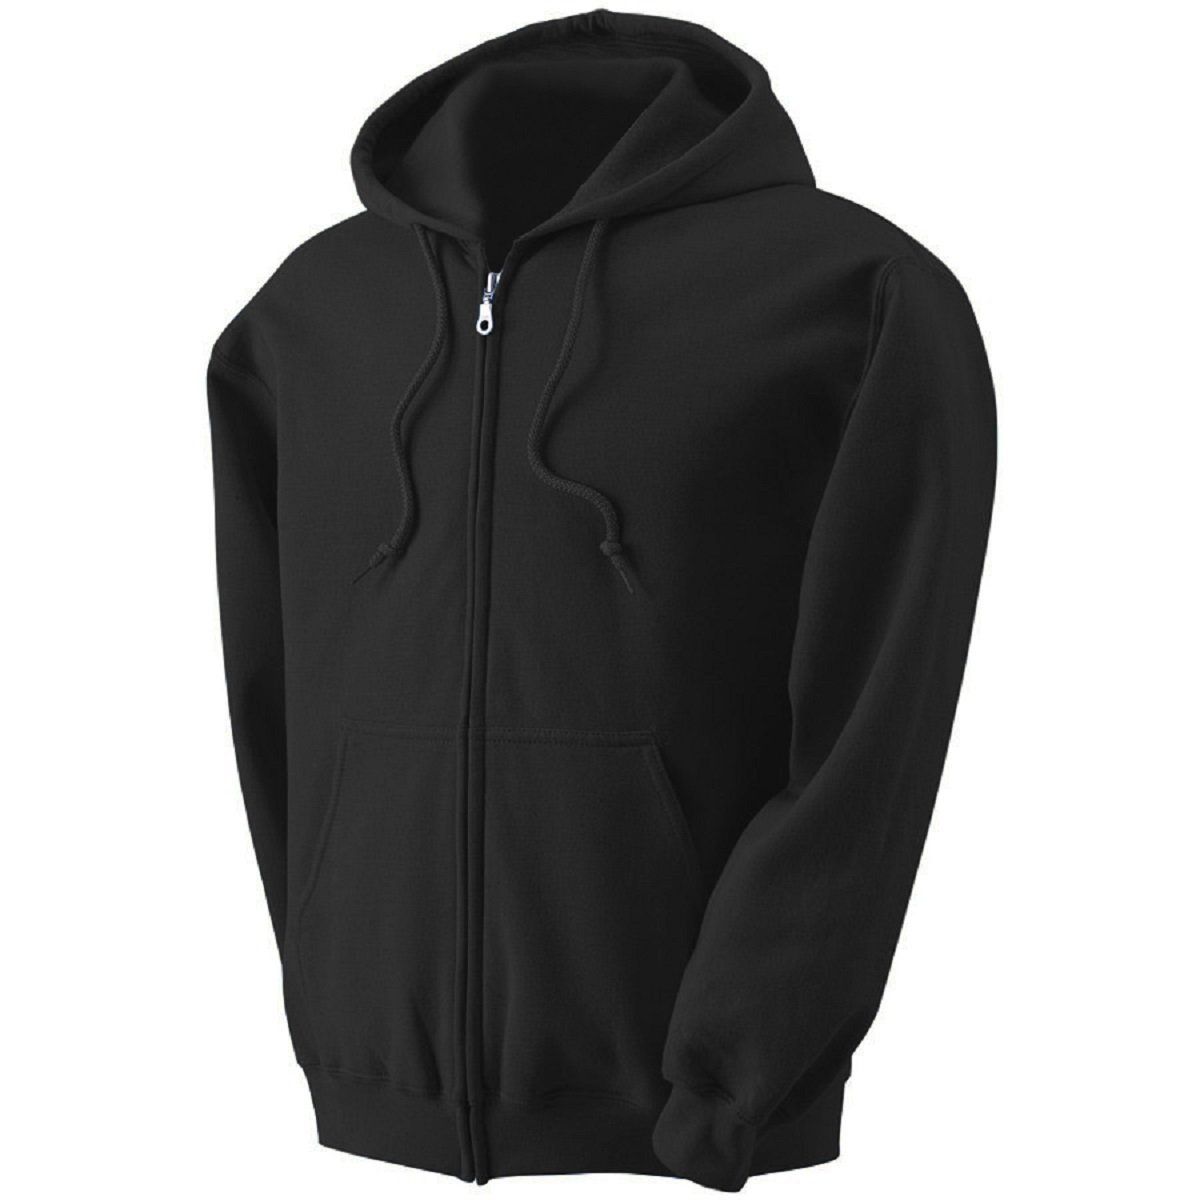 71e3e50e8933 THE MOST STYLISH ZIP-UP HOODIE FOR MEN! Do you want to look stylish even  when you re wearing athletic clothes  This men s zip up hoodie is so  fashionable ...